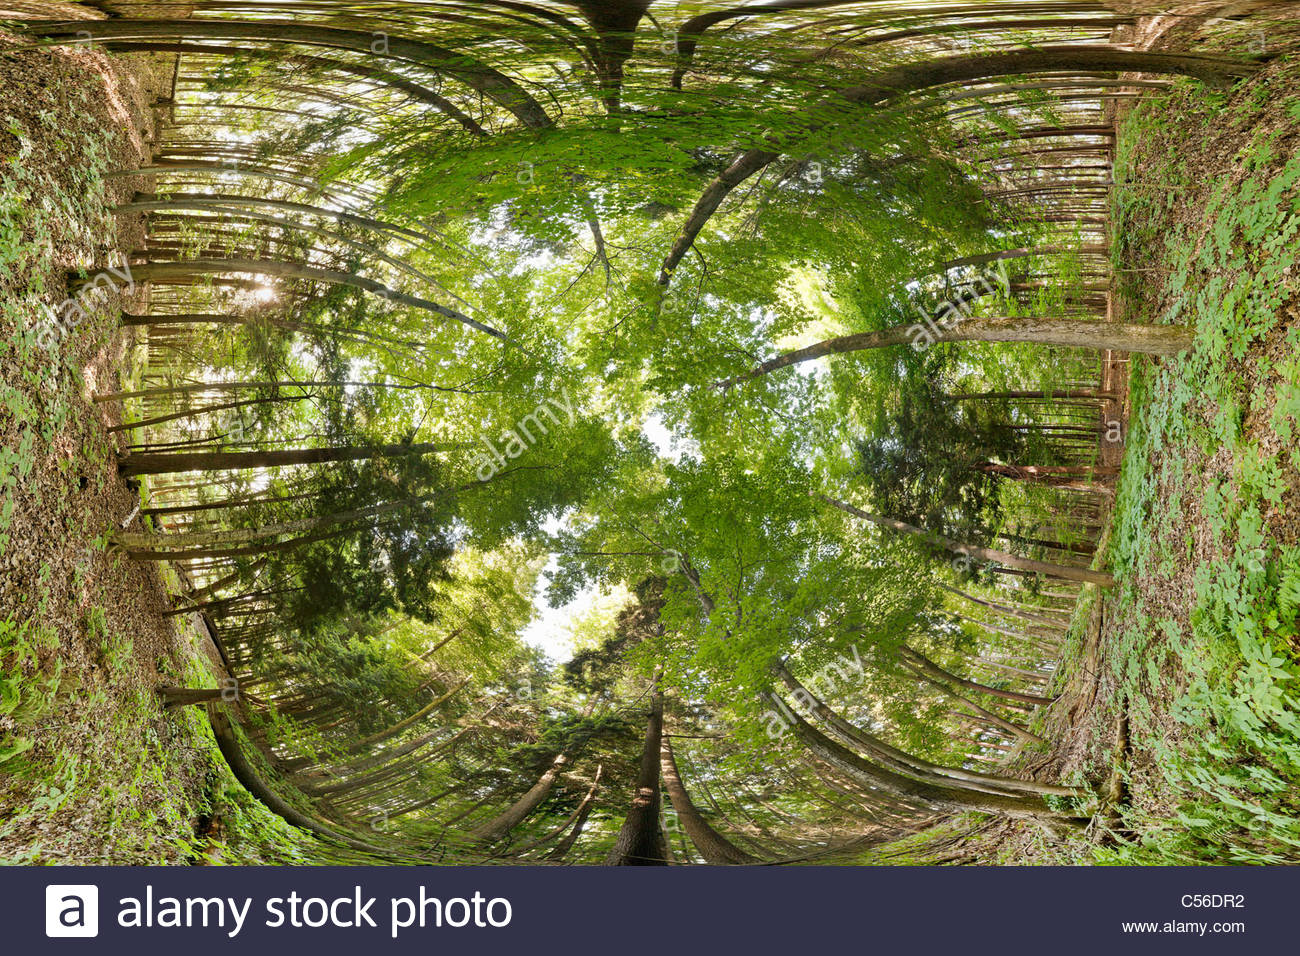 Carolinian Forest showing canopy, understory, and floor, in Rouge National Park an urban wilderness in Toronto Ontario - Stock Image